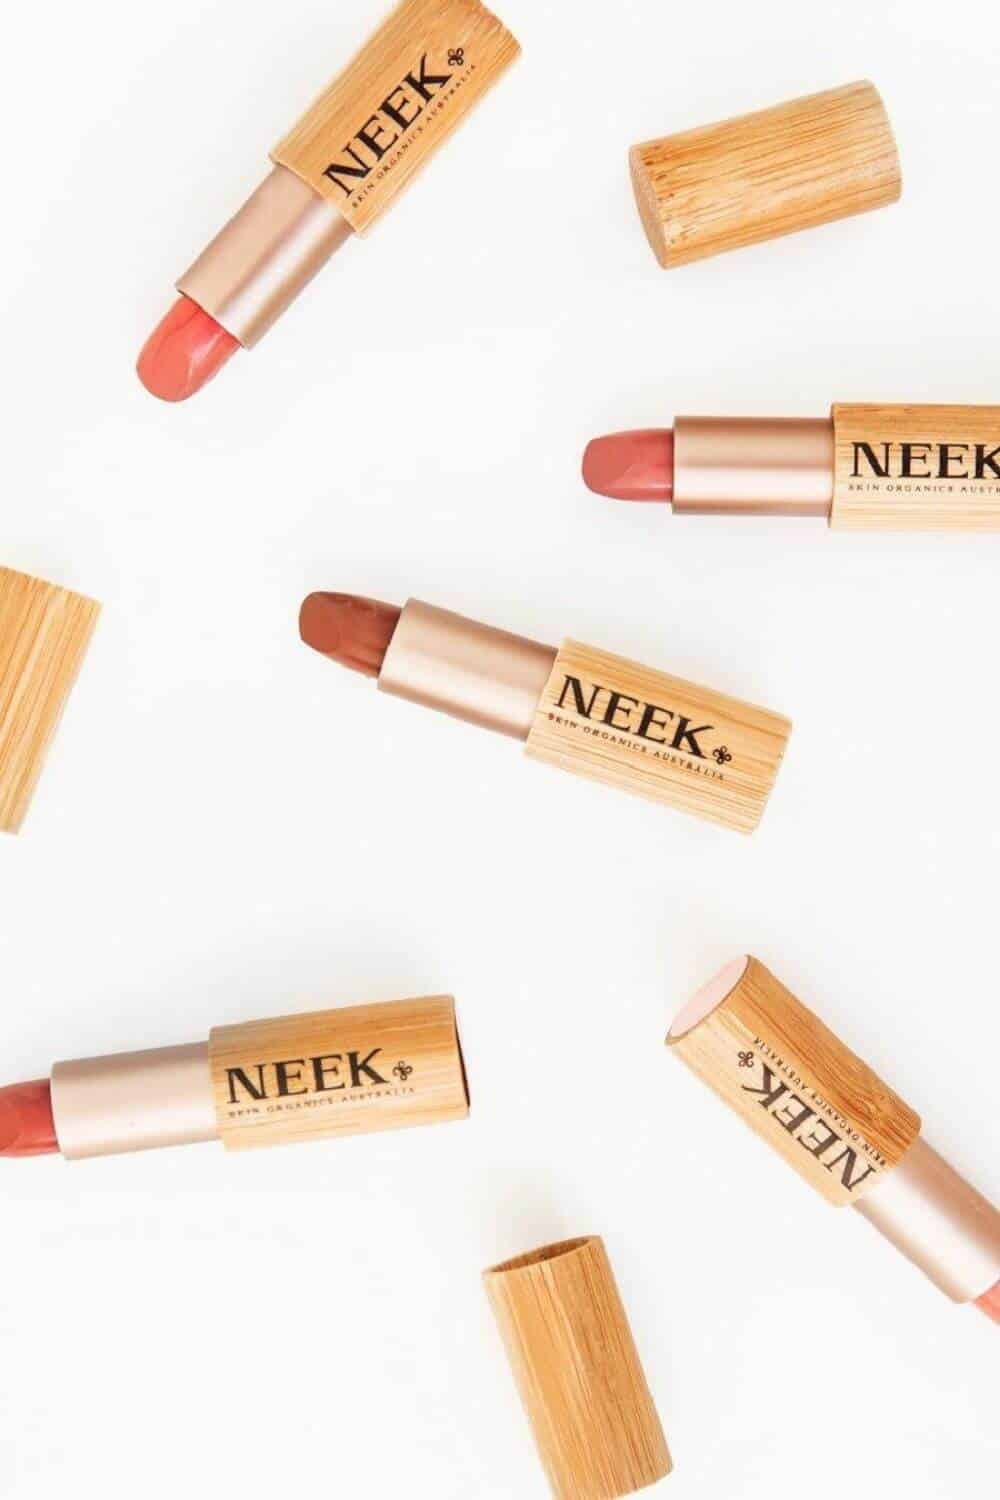 On the look out for sustainable and eco friendly makeup? Thankfully, there are quite a few ethical makeup brands out there to choose from. And many are available and based in the UK and US! Image by Neek Skin Organics #ecofriendlymakeup #sustainablejungle